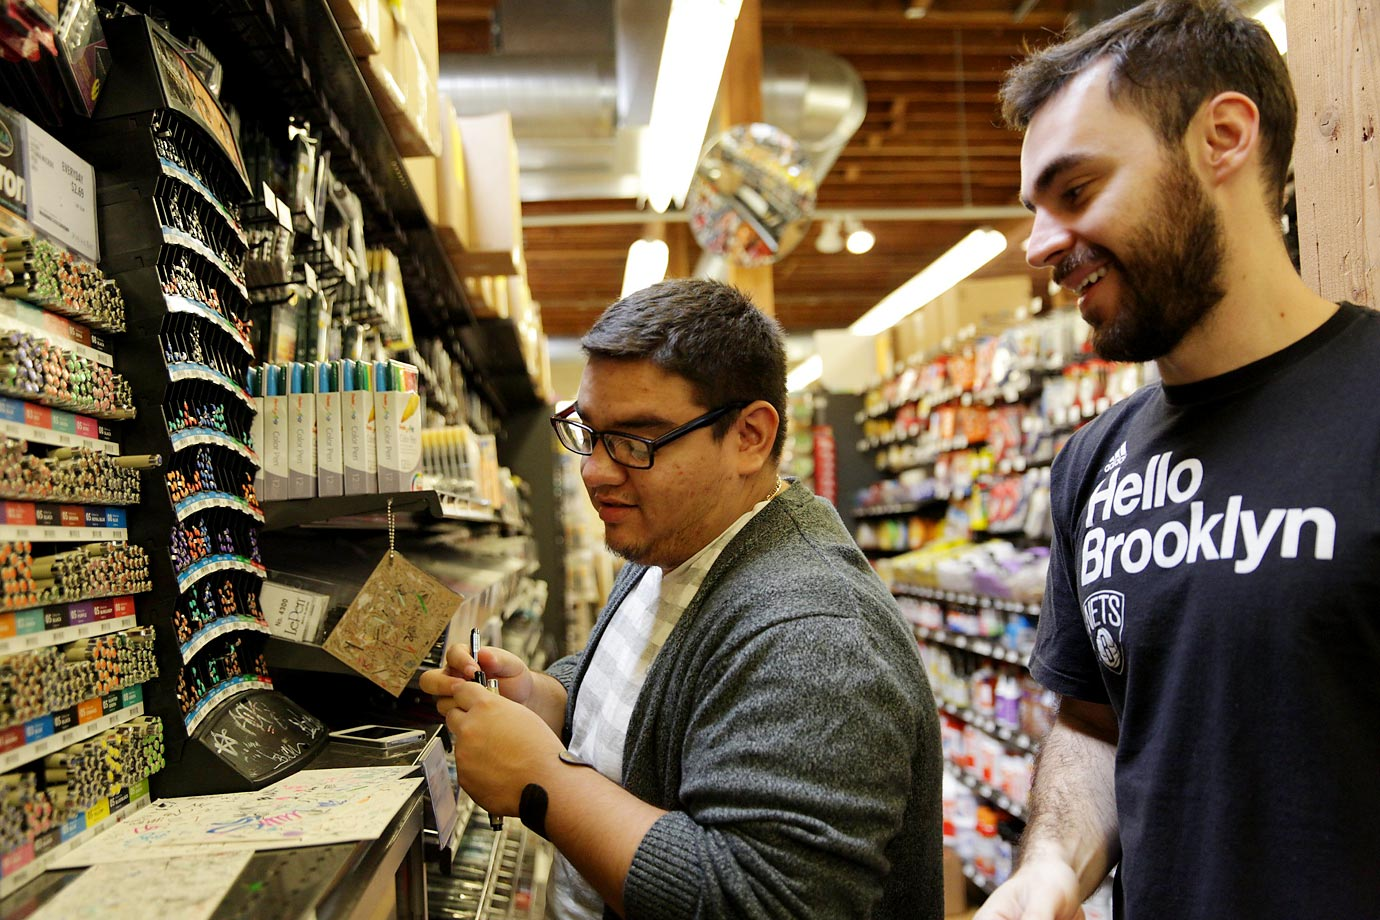 On a trip to Blicks Art Materials in northwest Portland, Jesus Garate (representing Mexico) and Guilherme Lemes (Brazil) were encouraged to look for inspiration, and ideas, down every aisle.